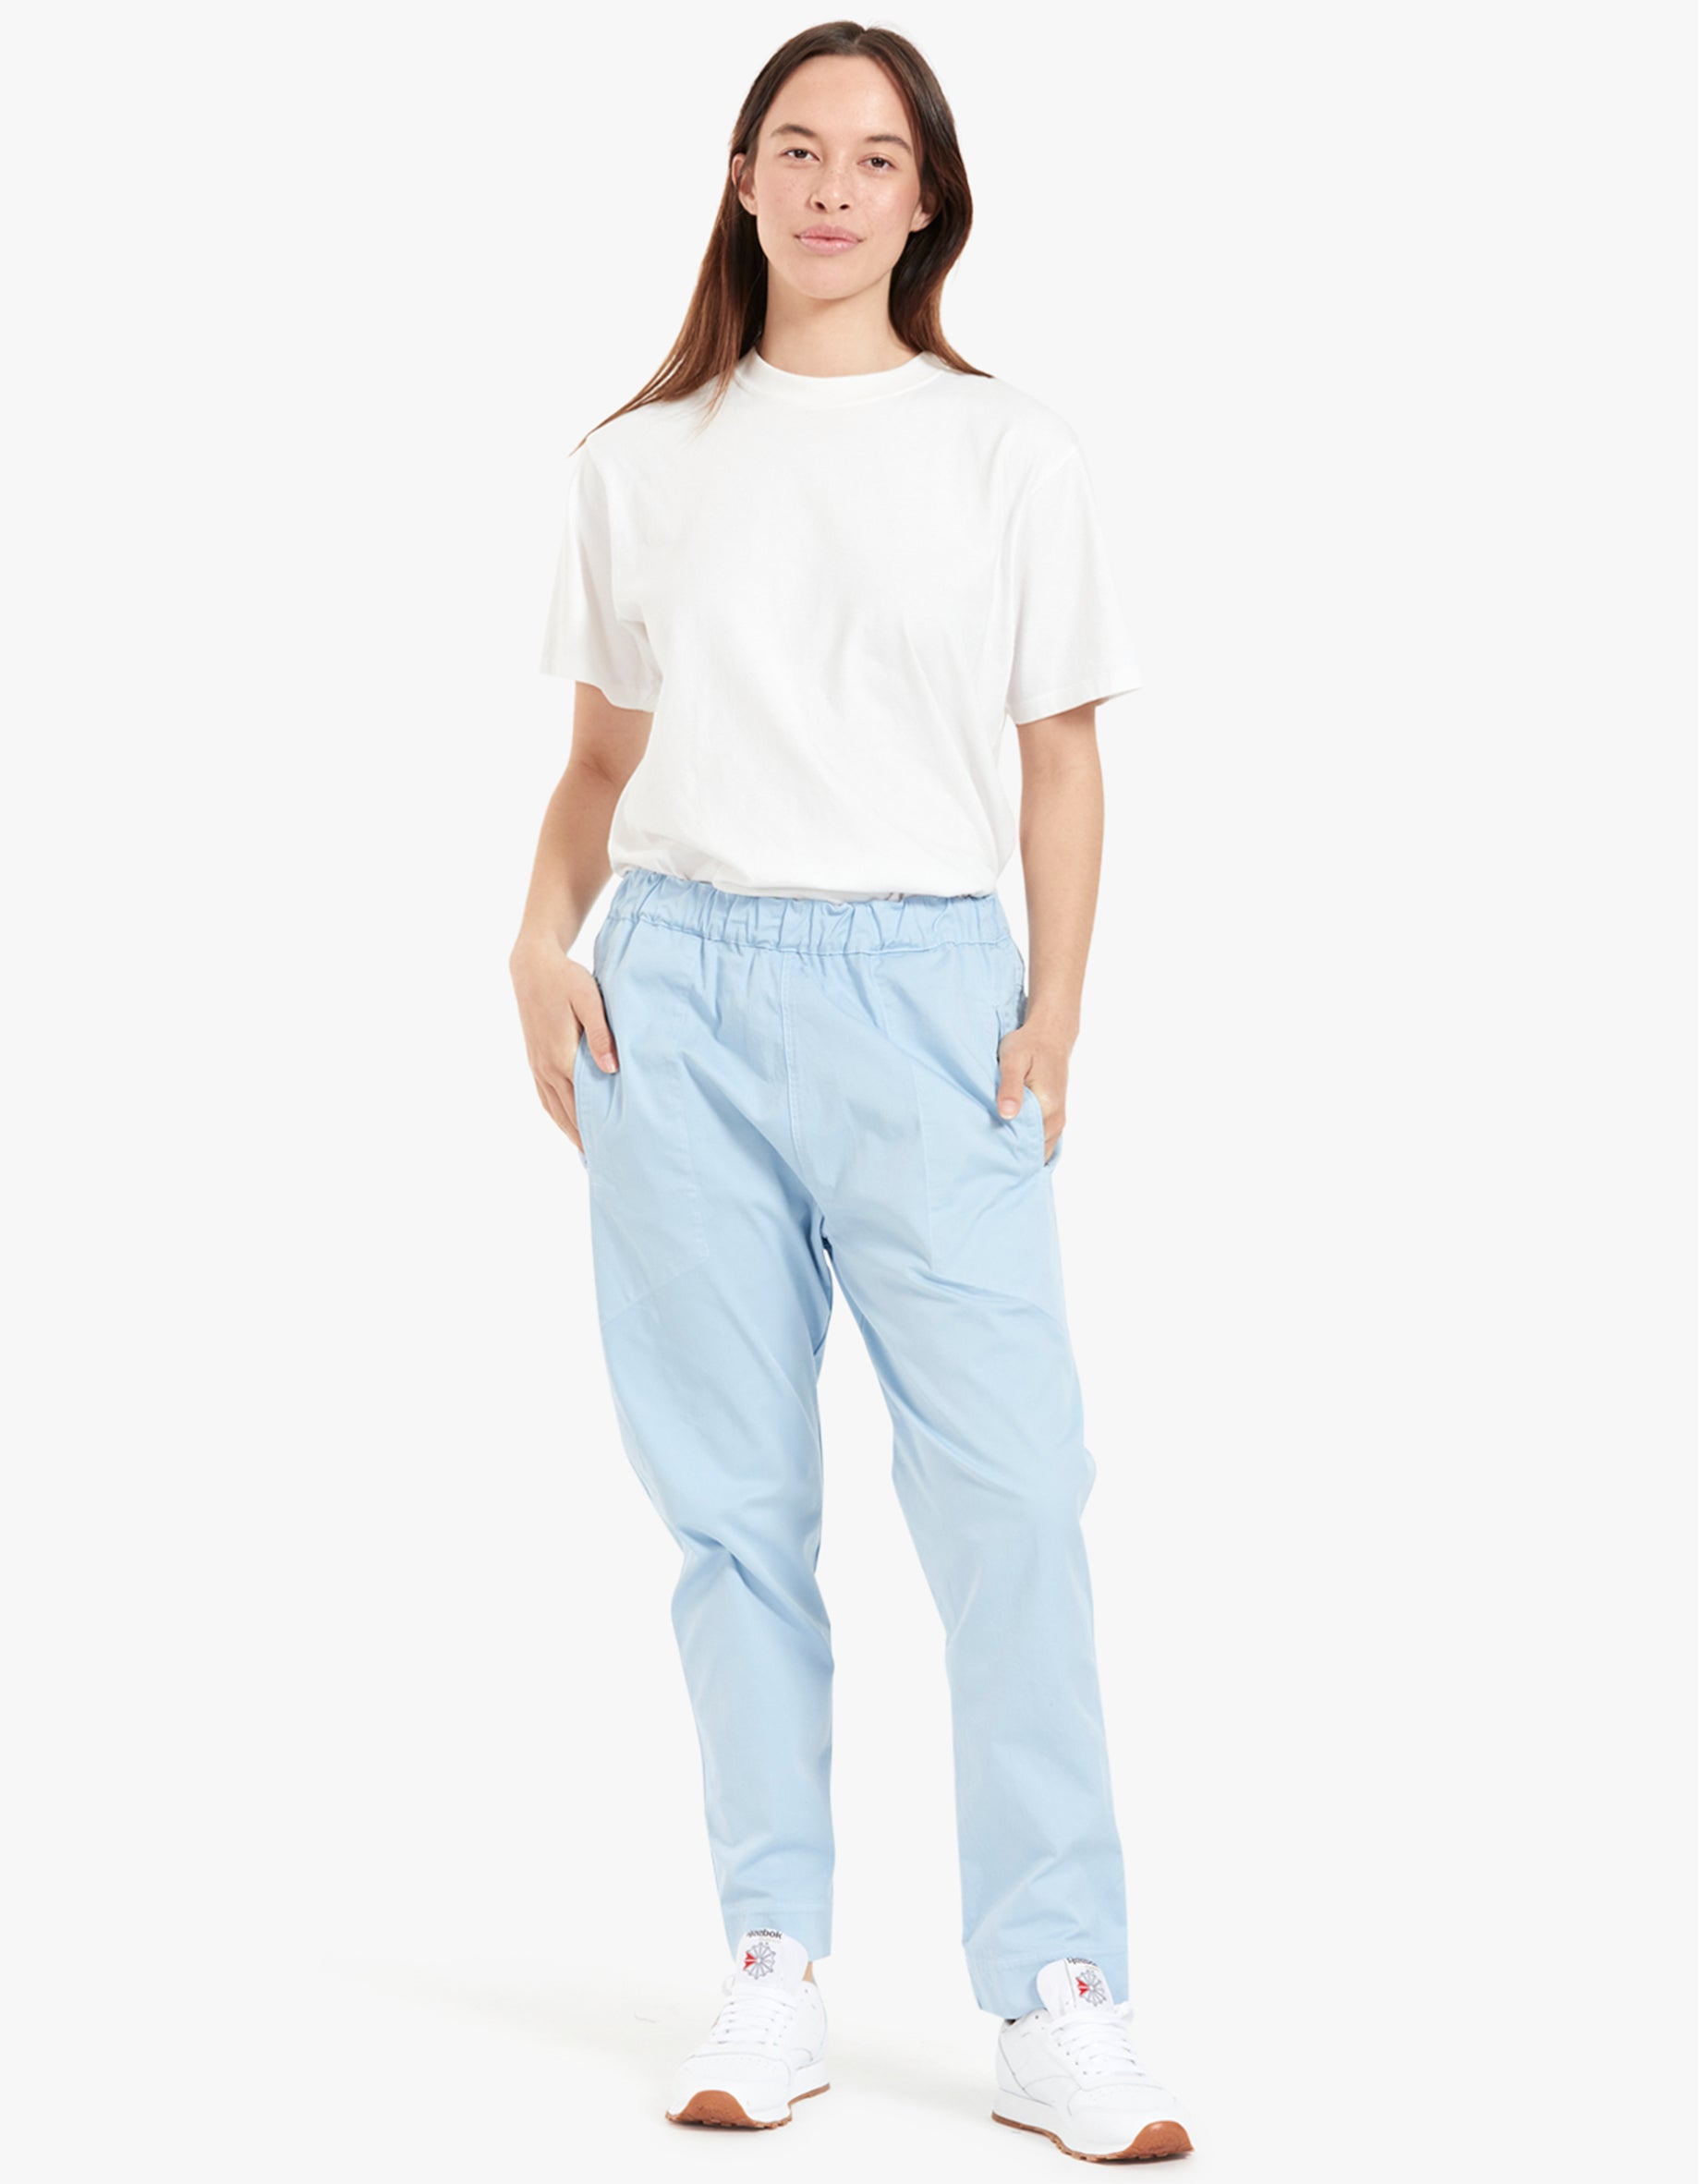 Womens Slouchy Pull On Pant II - Pale Blue